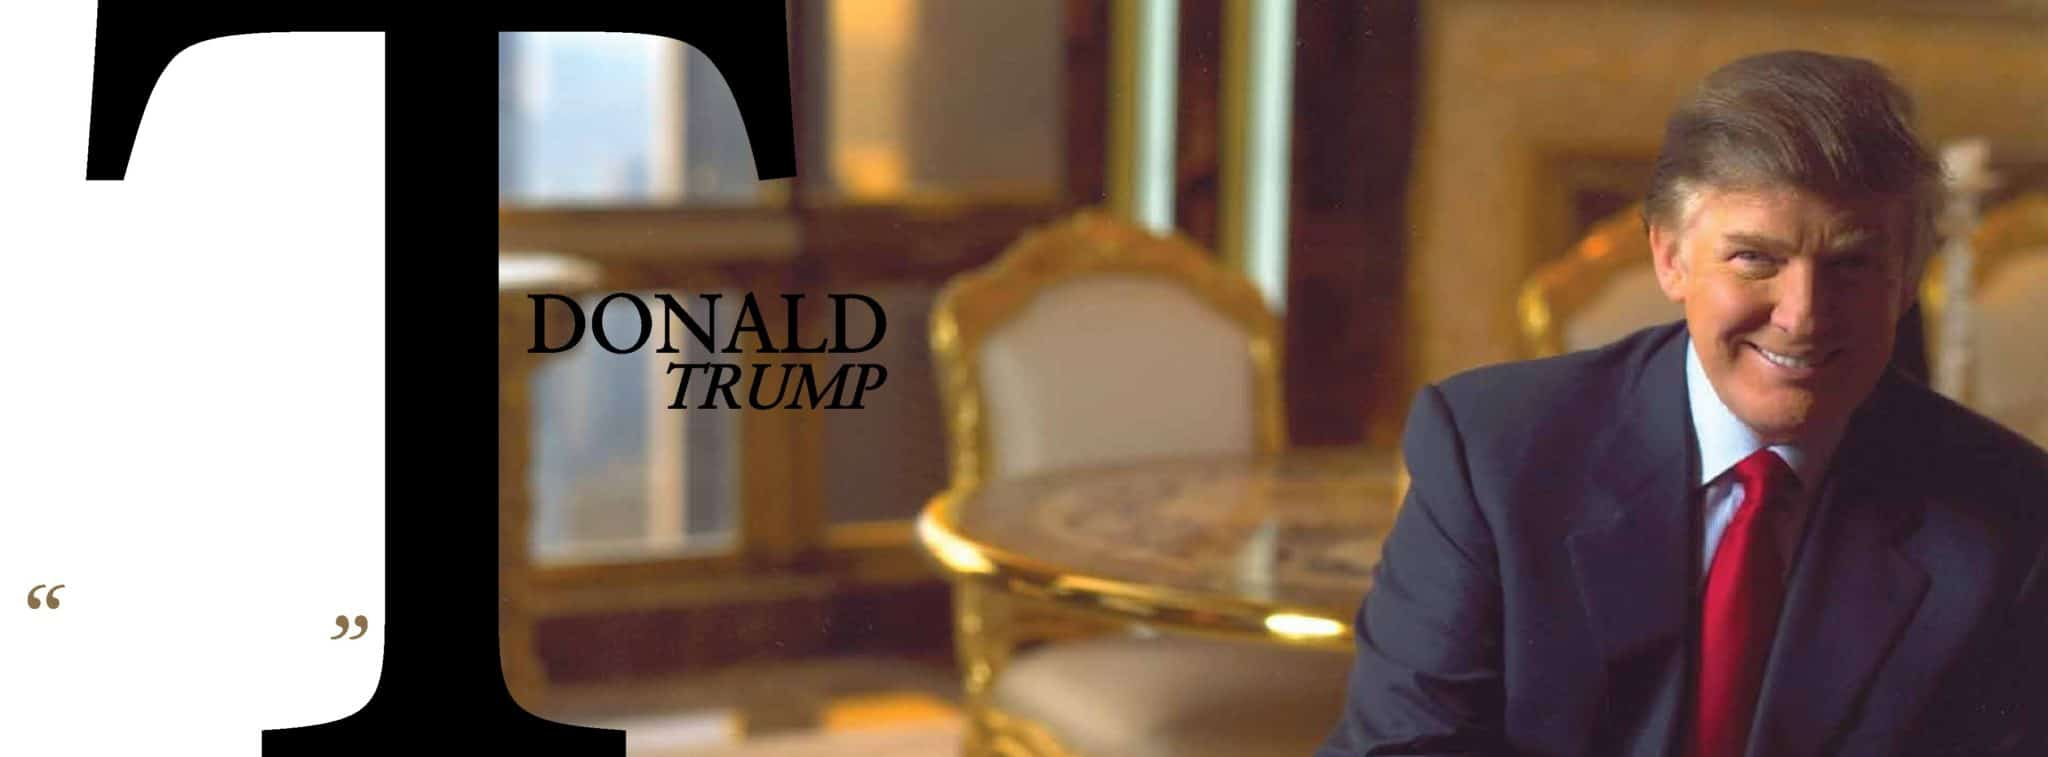 donald trump villas in dubai